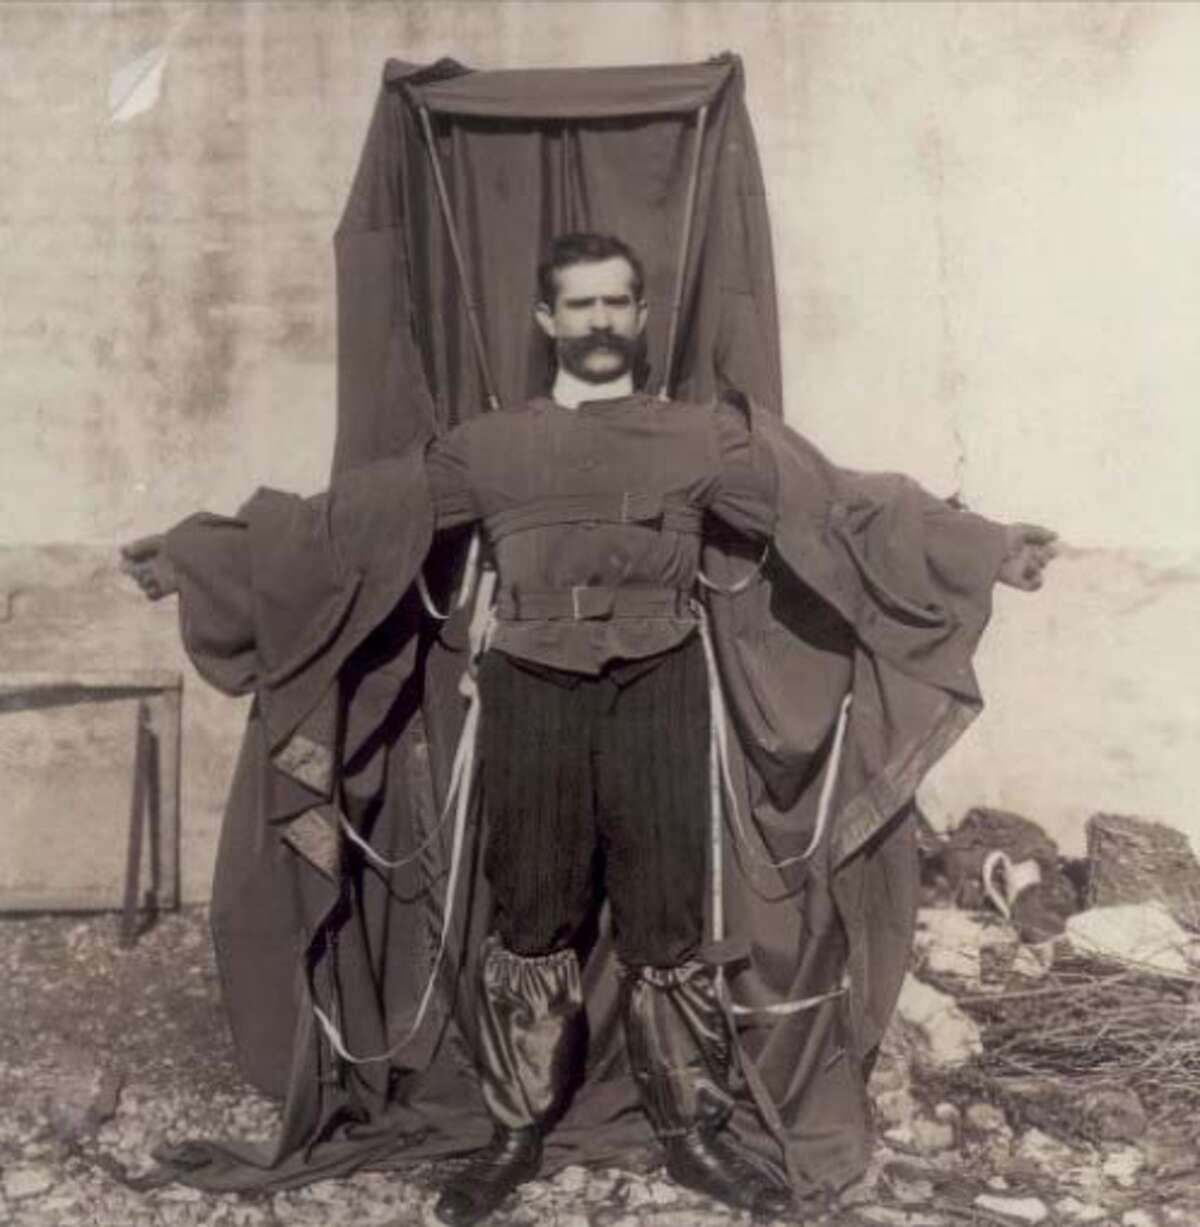 Franz Reichelt (1879-1912), a tailor, fell to his death off the first deck of the Eiffel Tower while testing his invention, the coat parachute. It was his first attempt with the parachute, and he had told the authorities he would first test it with a dummy.